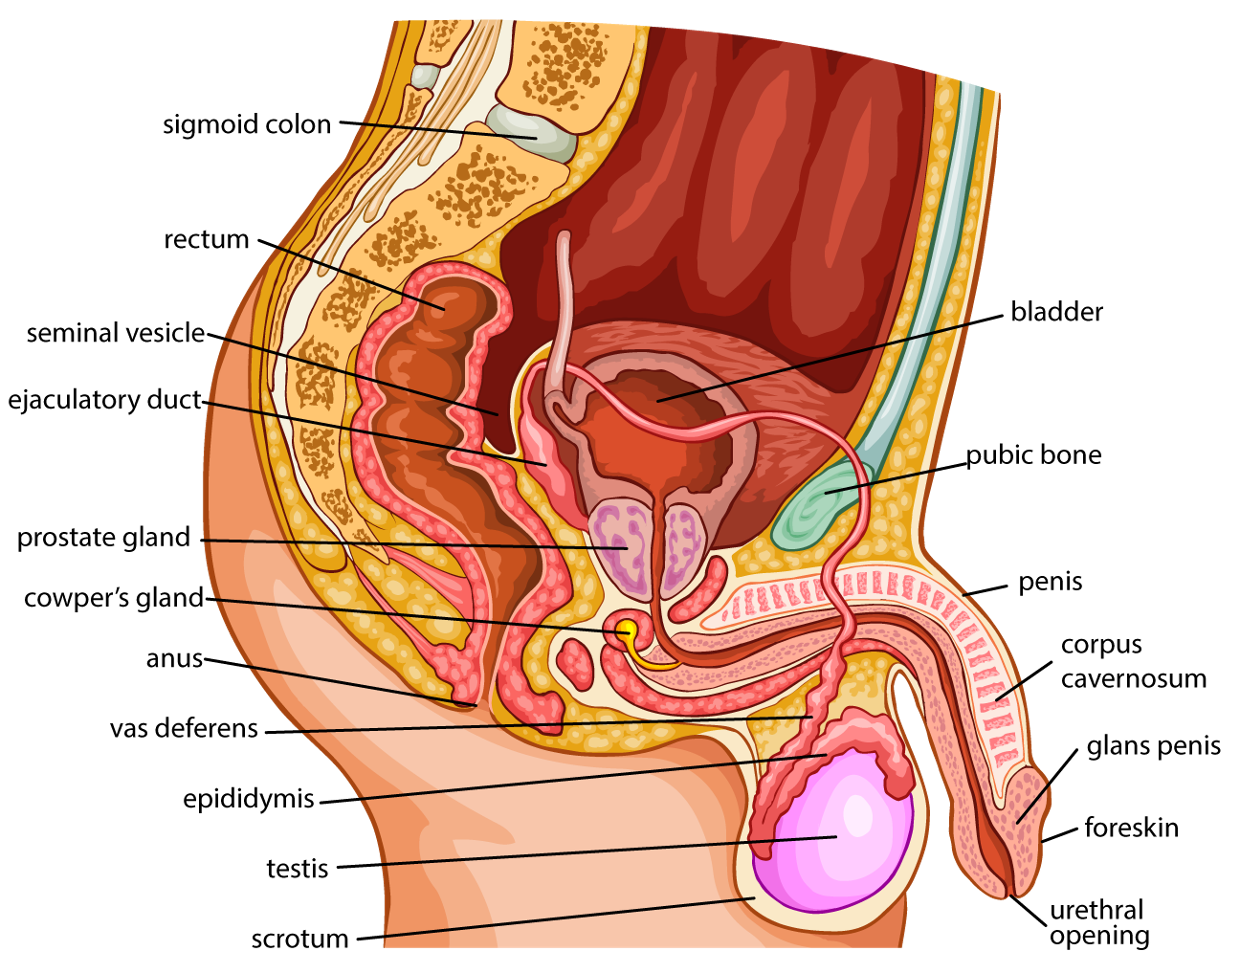 Male reproductive system. The structure of the reproductive system of men 79